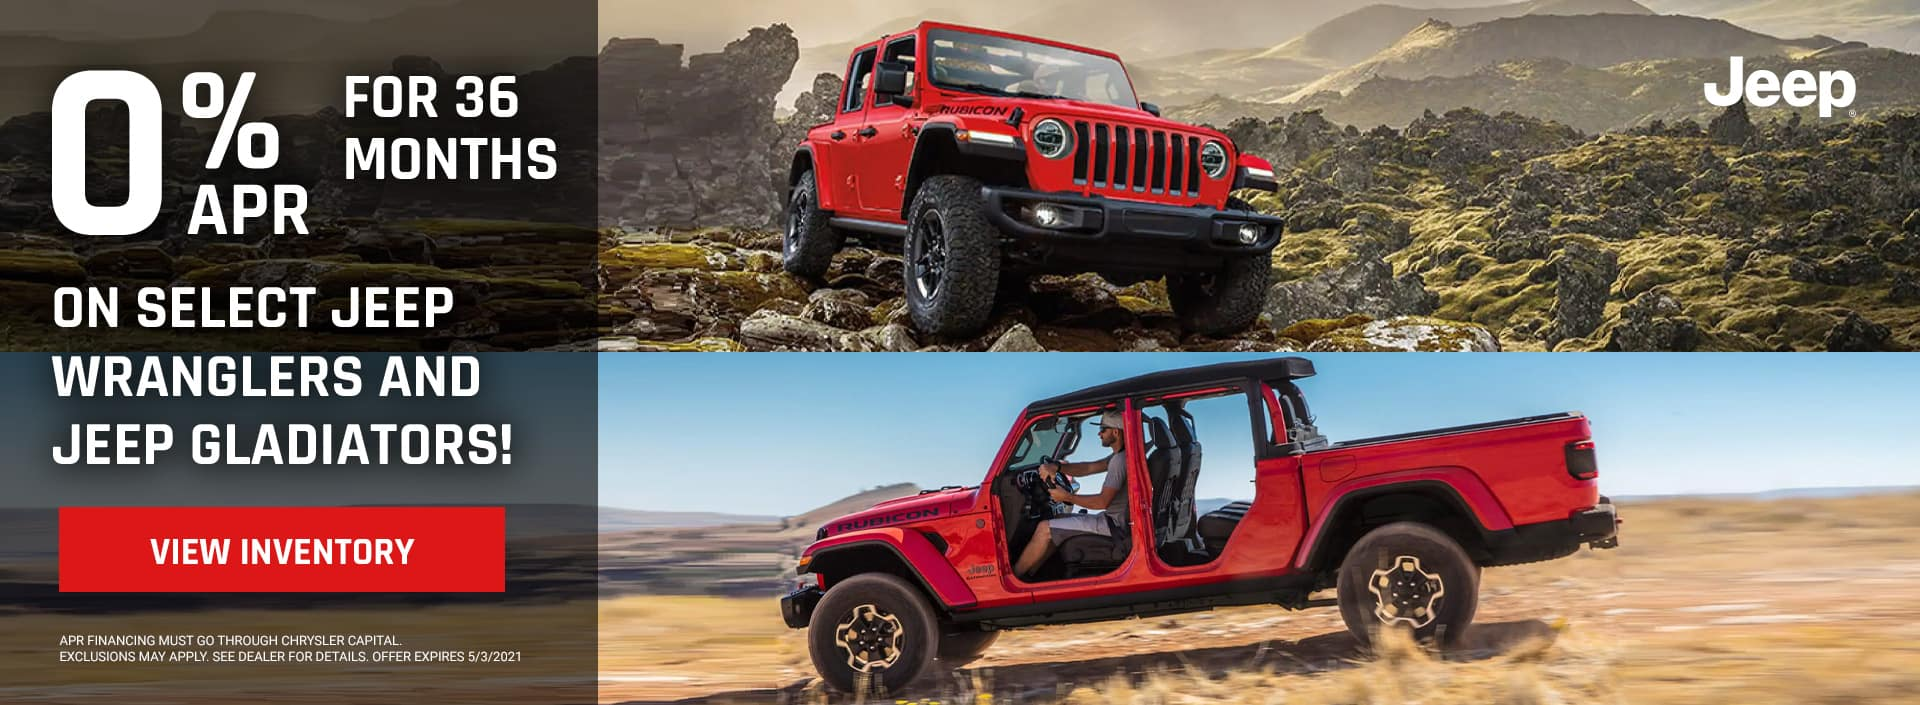 0% for 36 months on Jeep Wrangler and Gladiators